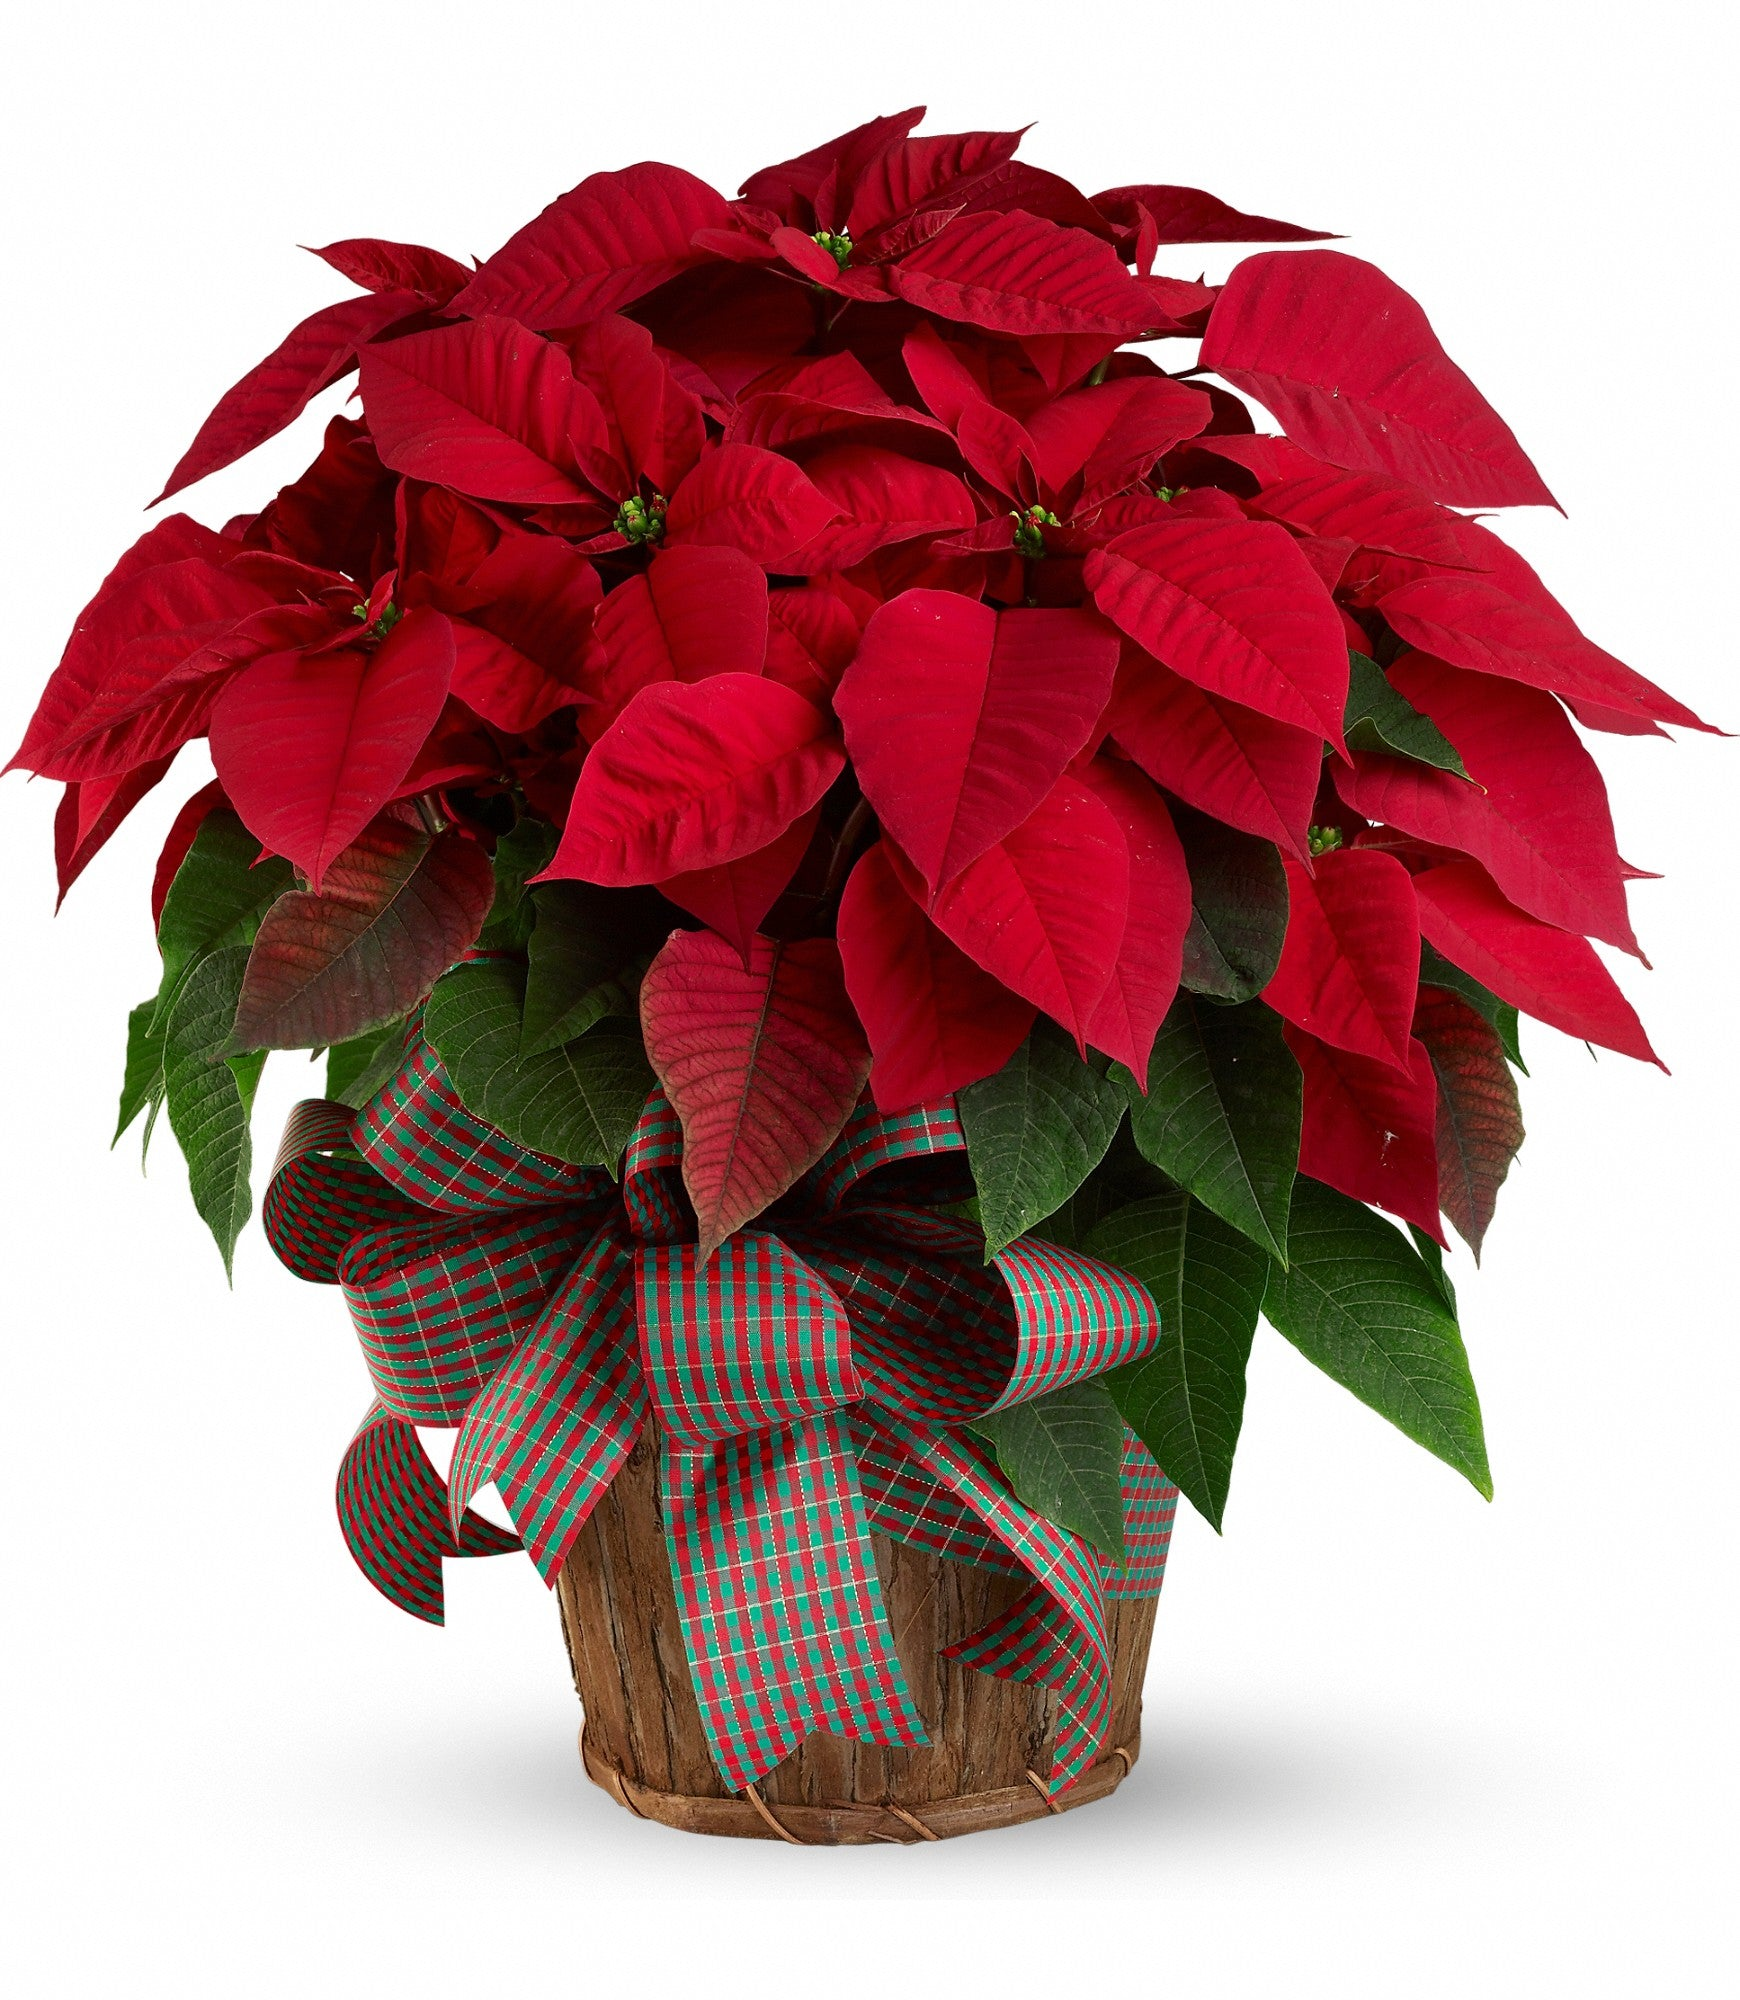 507 - Poinsettia Plant - Medium